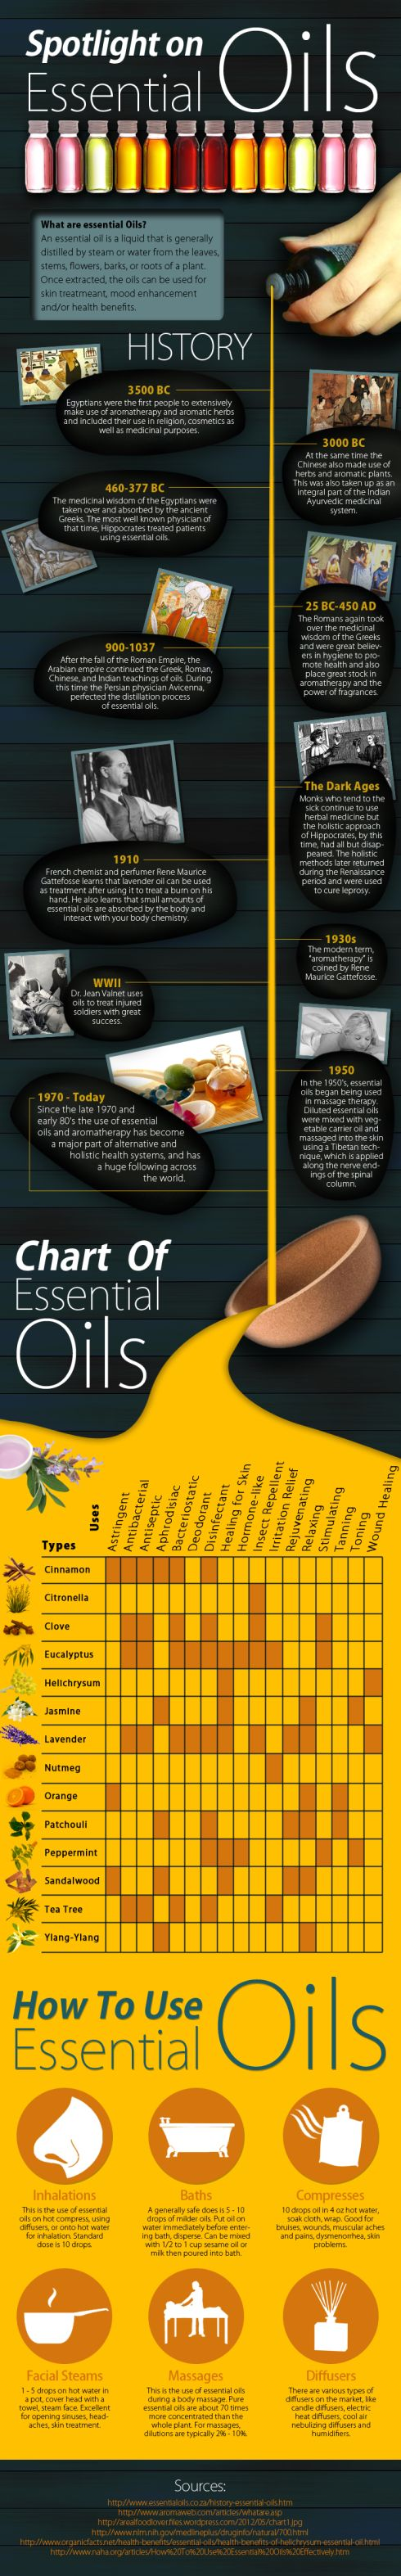 Aceites esenciales #infographic #oil